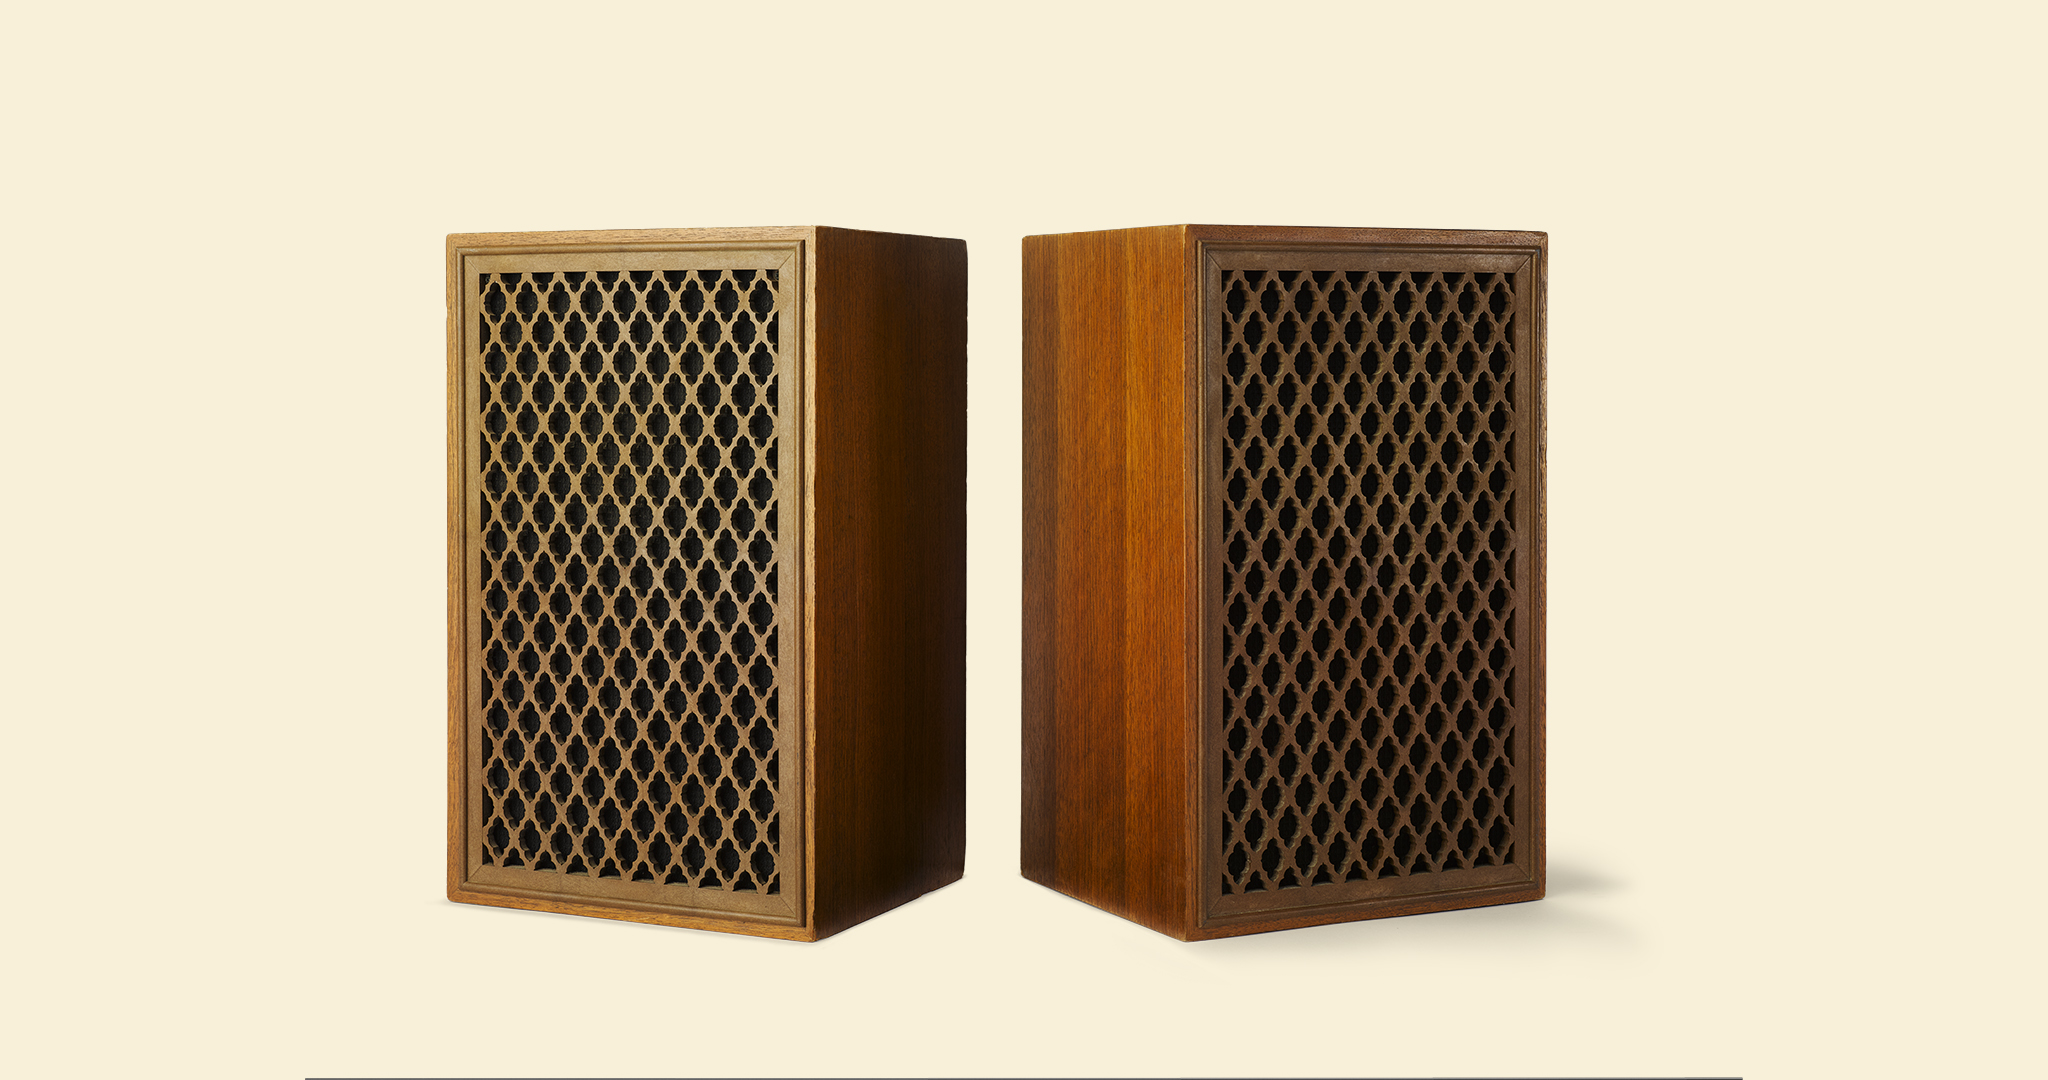 3703_ebay_retro_speakers_v1_2k